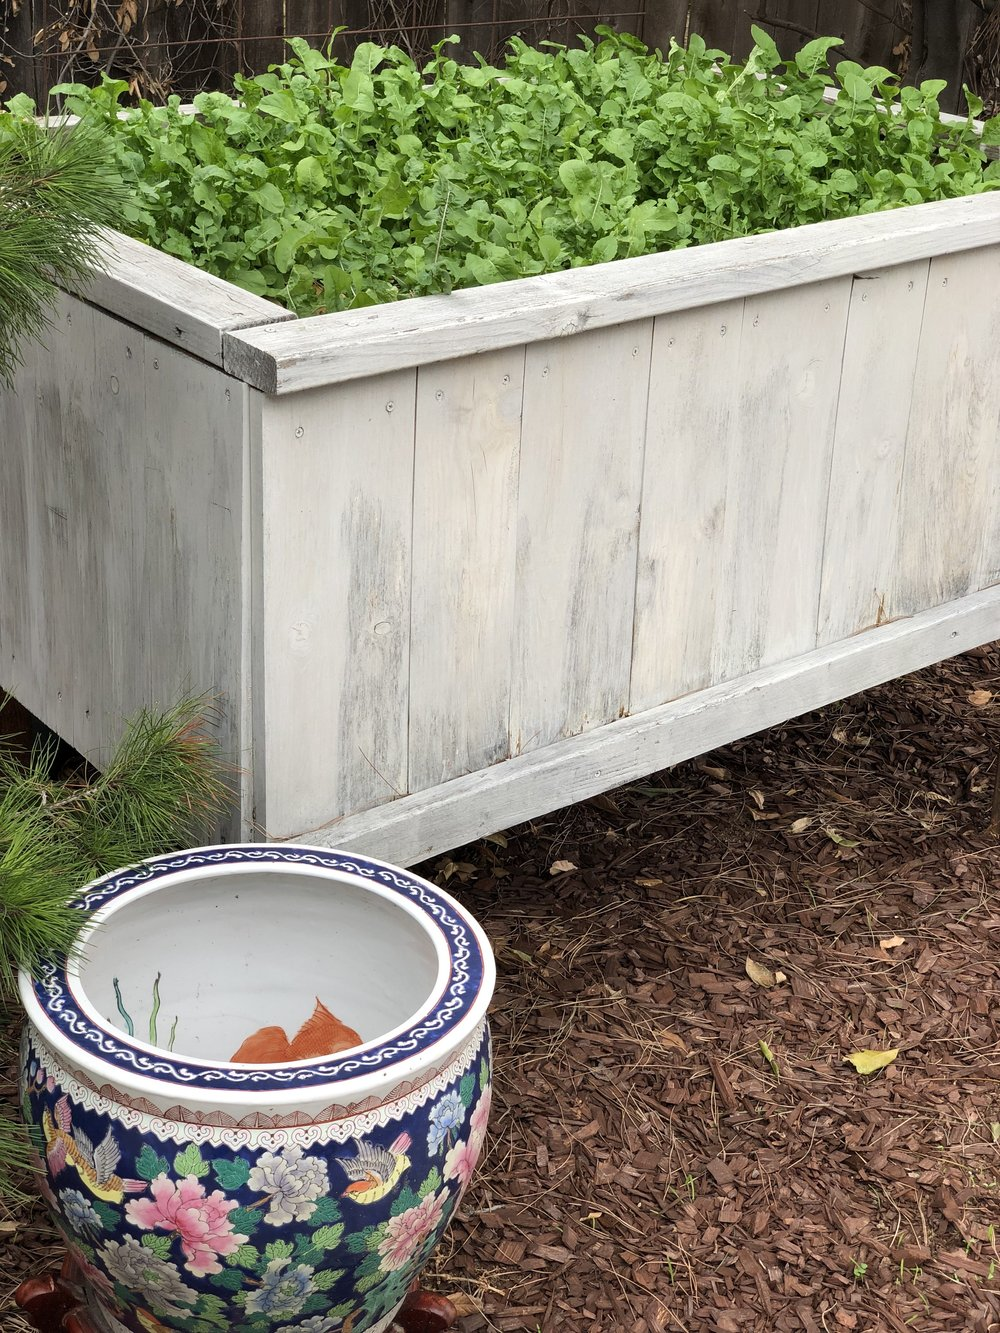 Many raised beds and planters made our garden party a true garden party. This bed is stuffed with arugula that we used to serve an arugula-pistachio-pomegranate salad with yuzu dressing.